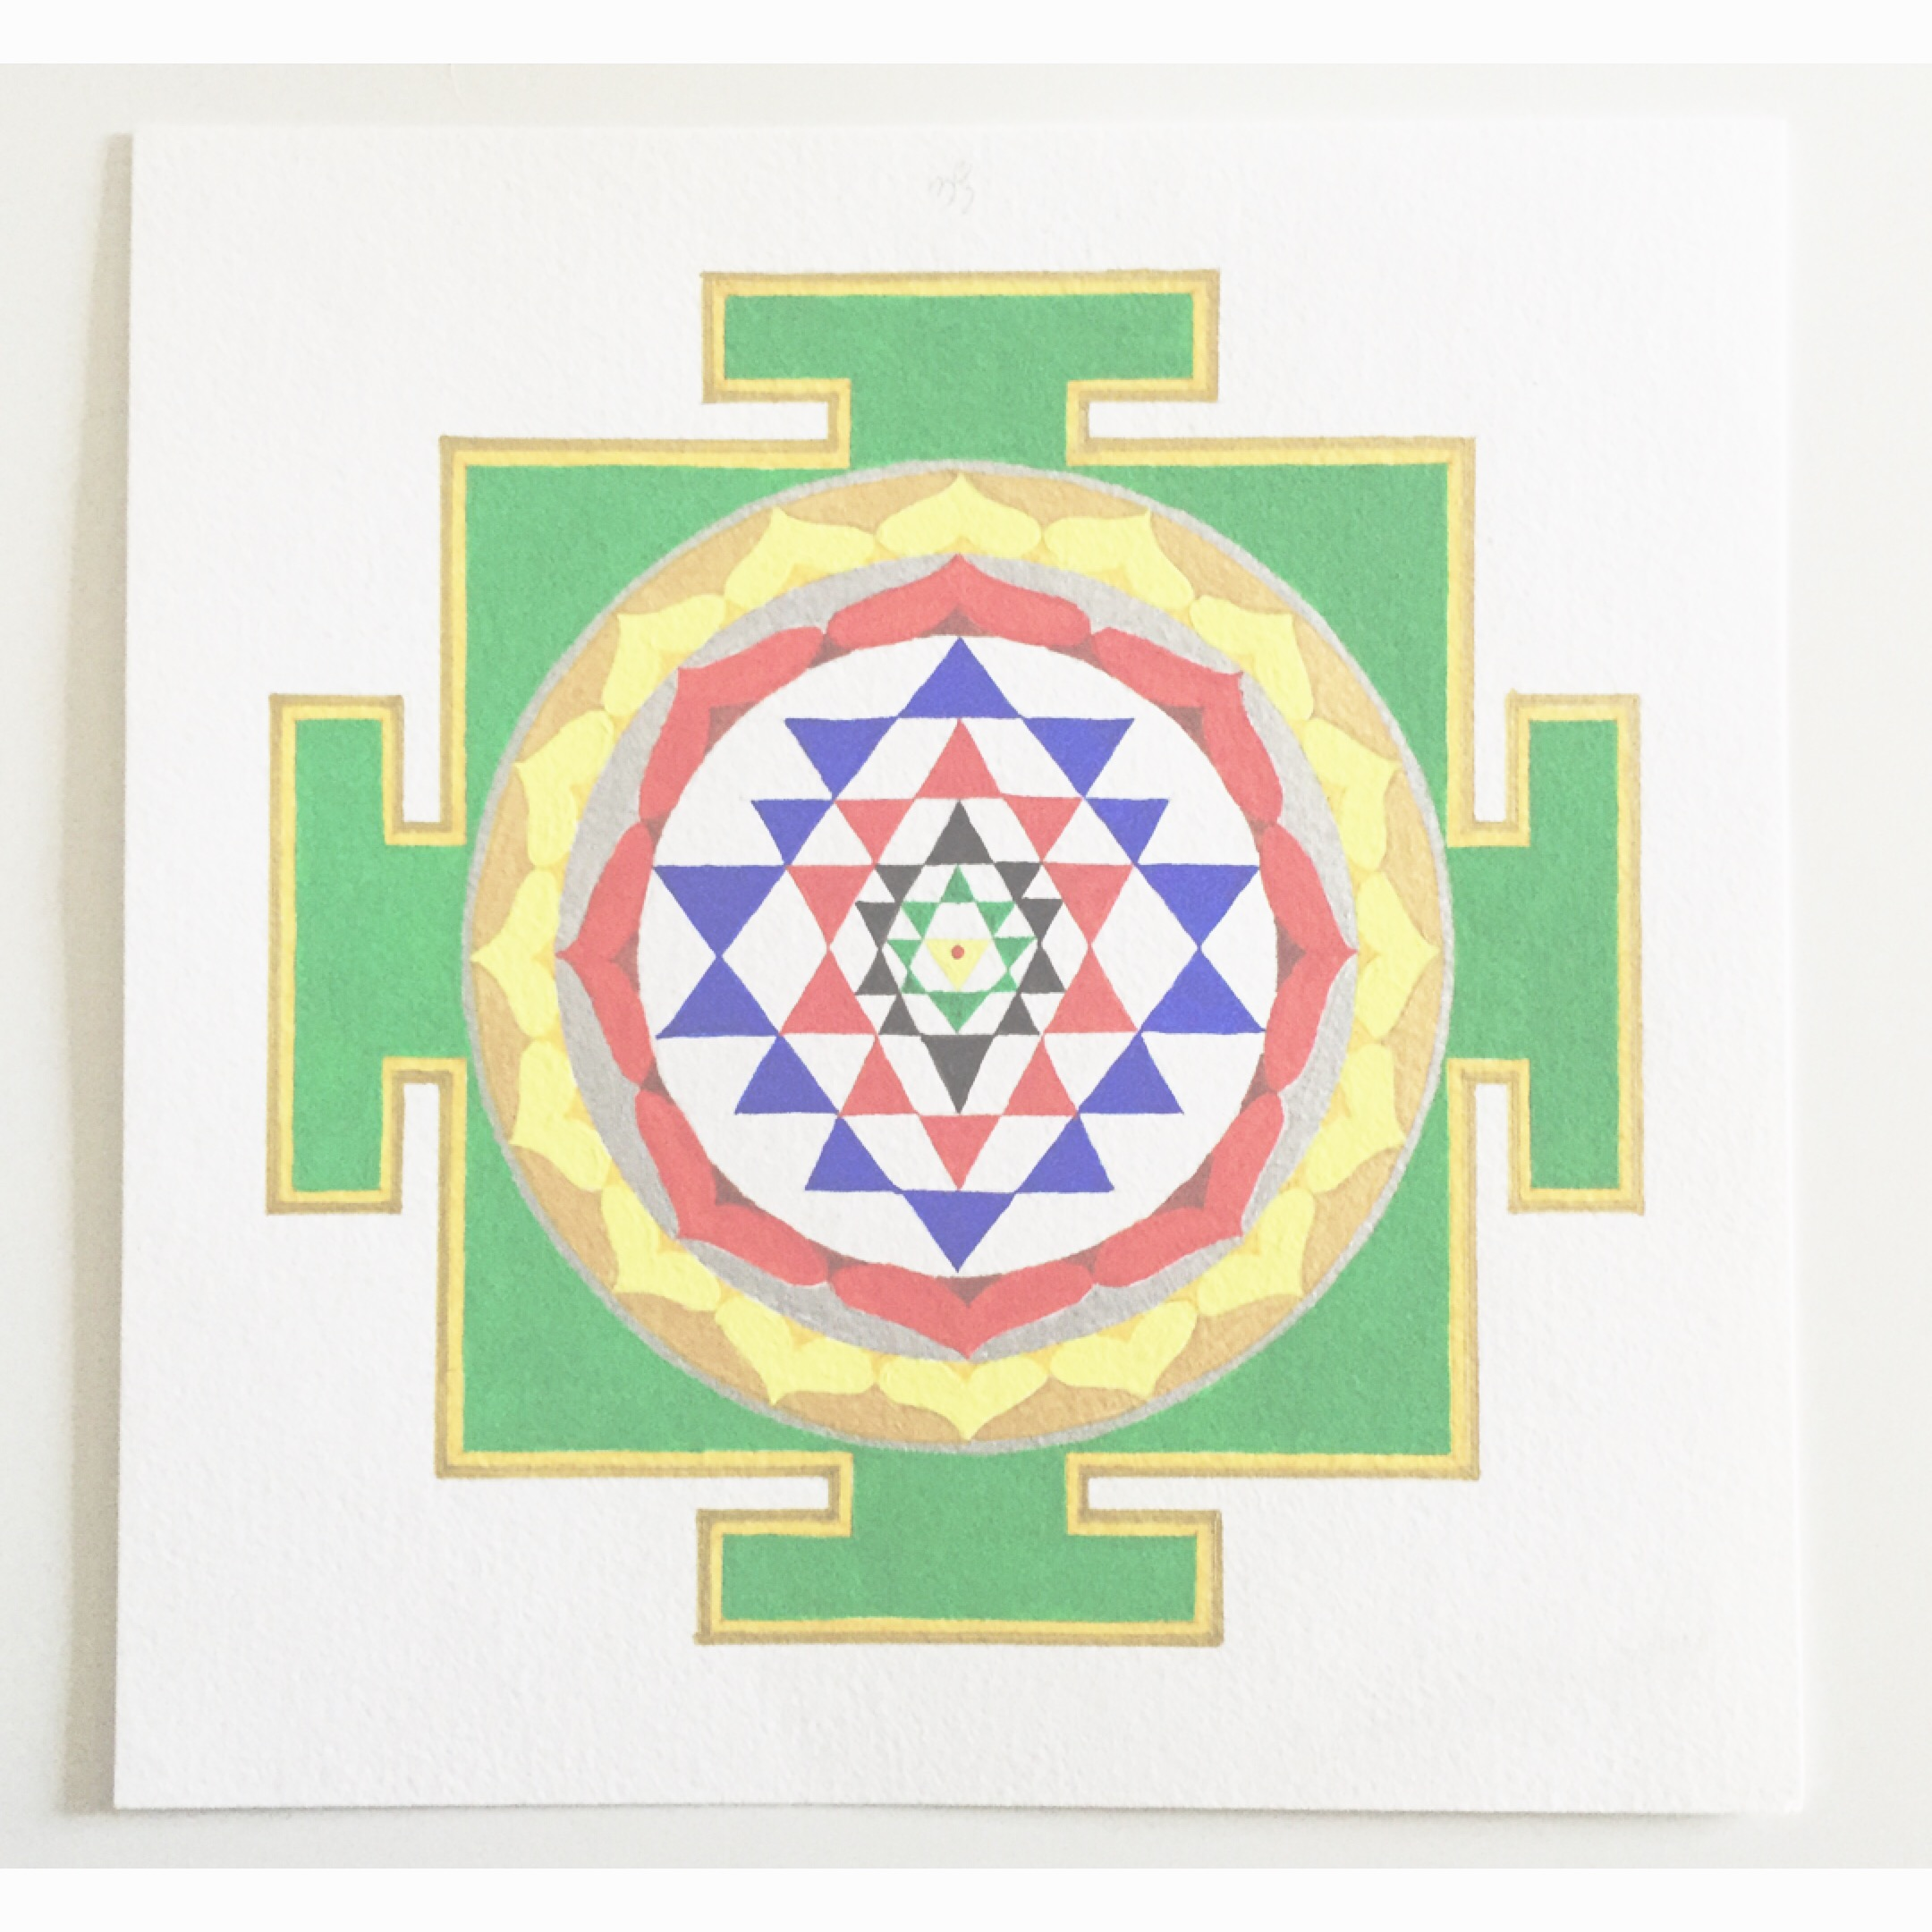 """#MantraMonday !! One of the most complex yantras is the Shri yantra. It represents the cosmos and can break through obstacles in our lives. the upward and downward triangles represent male and female. mantra: """"OM"""" #mantra  #yantra  #mandala  #shriyantra  #vedic"""